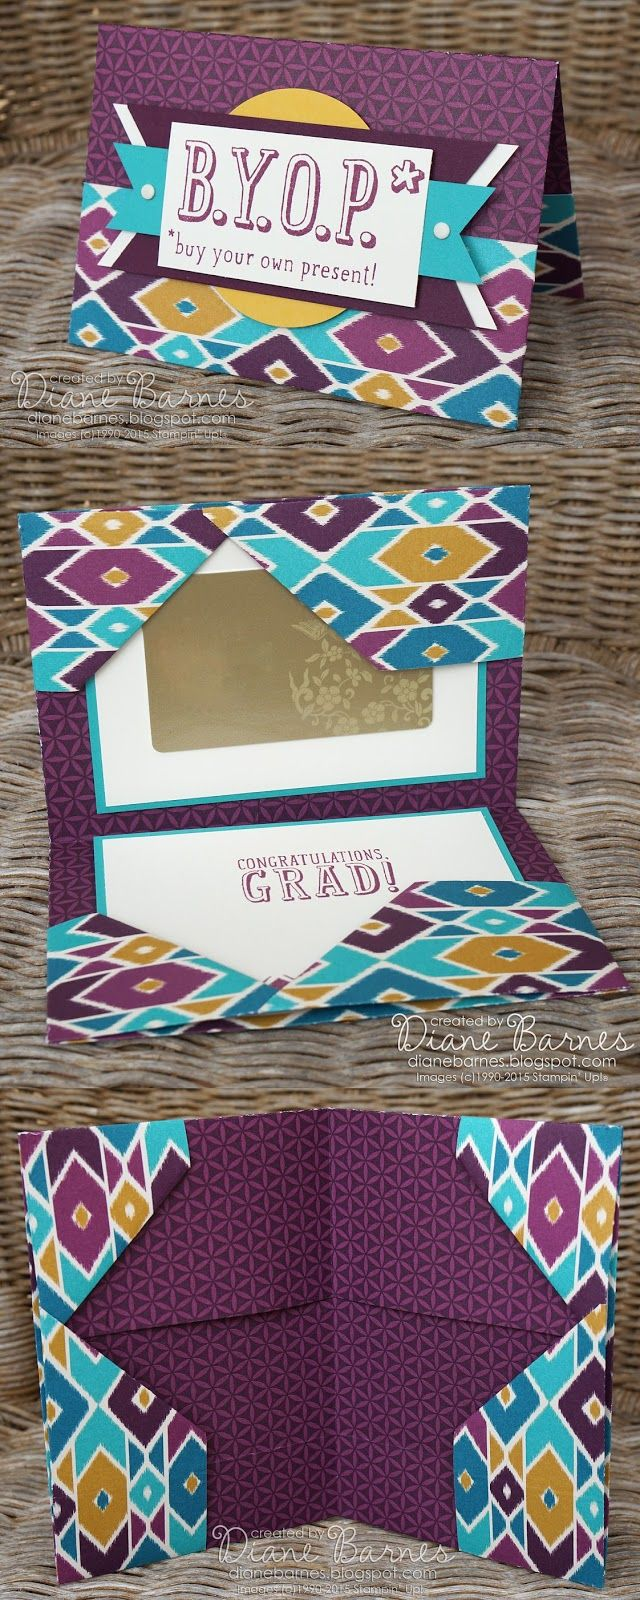 no cut patterned paper gift folder tutorial by Di Barnes using Stampin Up Bohemian paper & BYOP stamp set. #colourmehappy